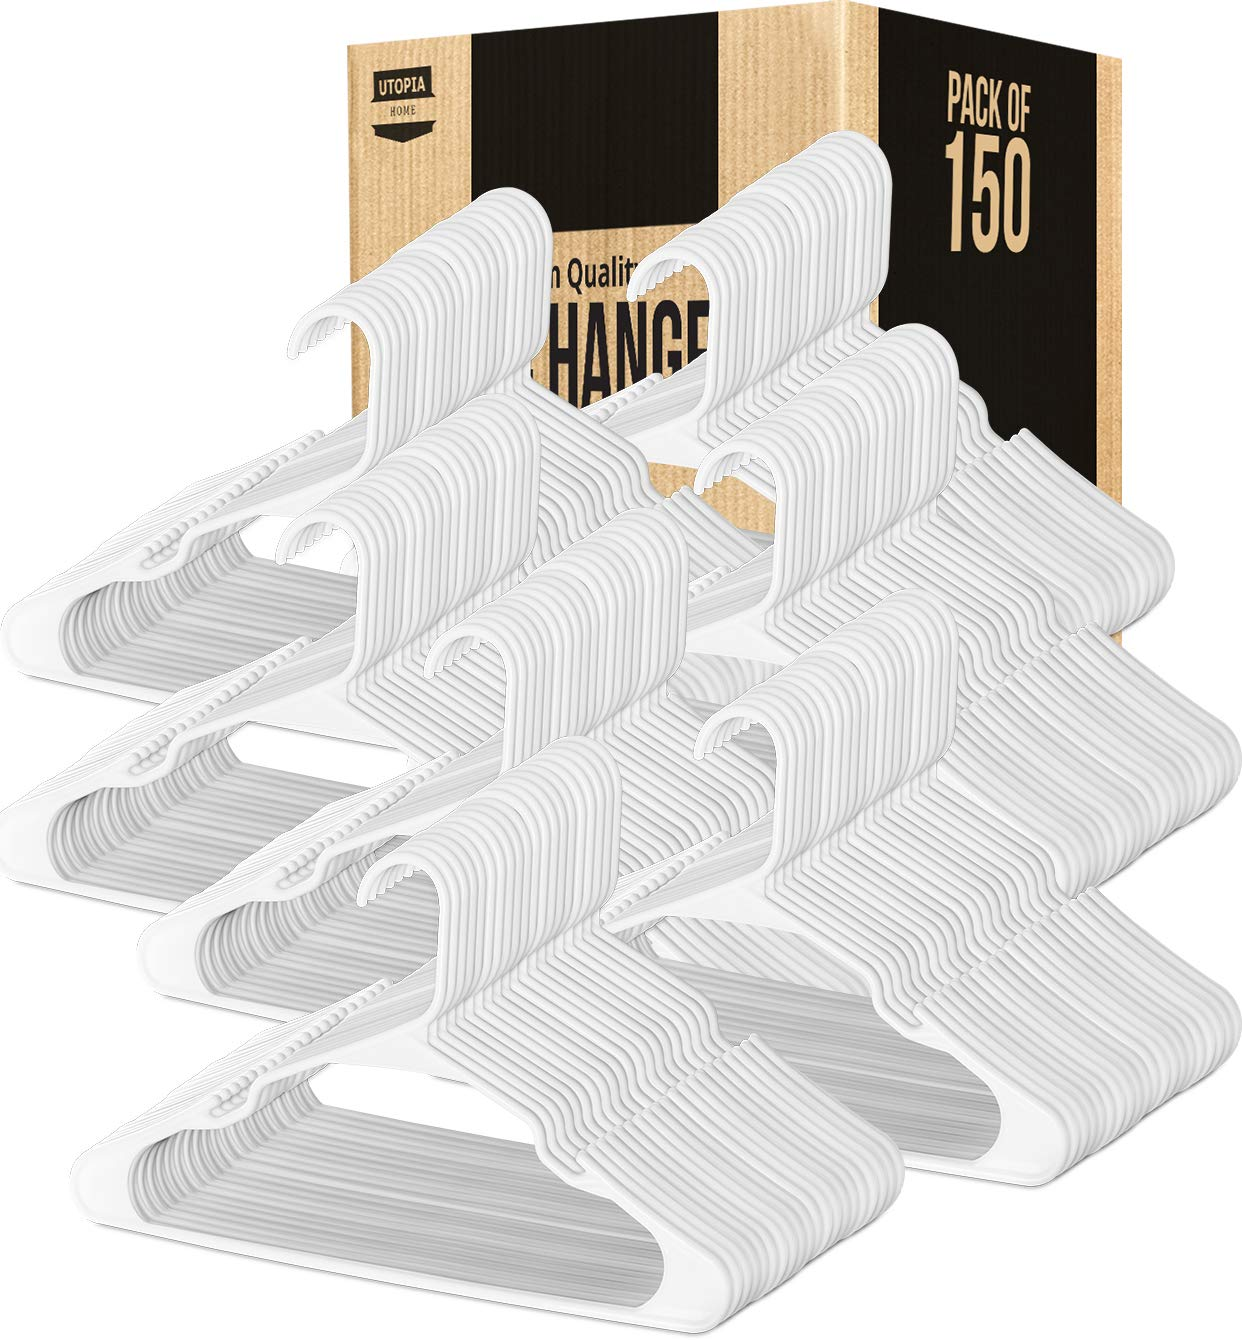 Utopia Home 150-Pack Plastic Hangers for Clothes Space Saving Notched Hangers - White by Utopia Home